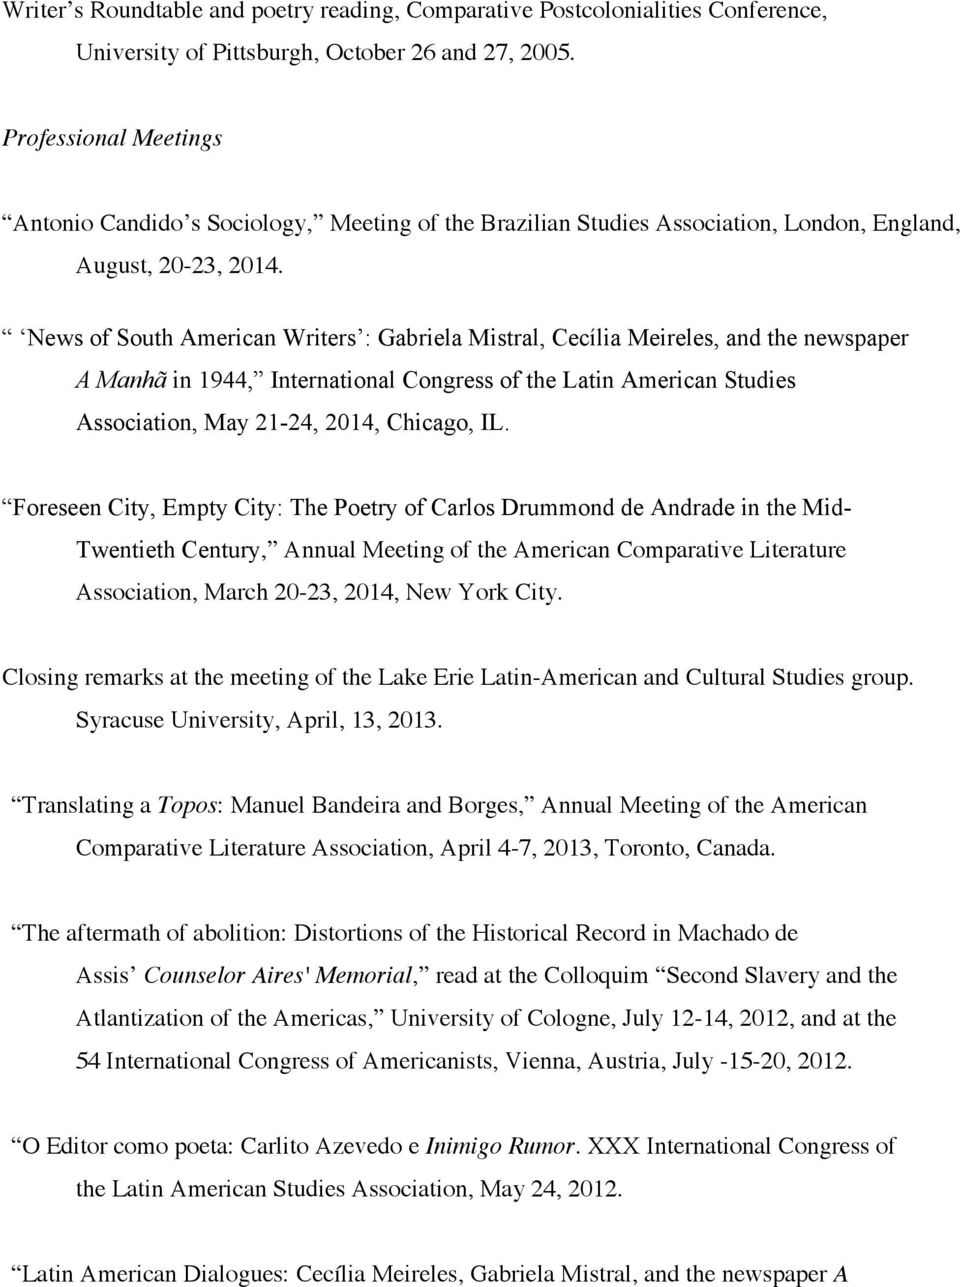 News of South American Writers : Gabriela Mistral, Cecília Meireles, and the newspaper A Manhã in 1944, International Congress of the Latin American Studies Association, May 21-24, 2014, Chicago, IL.